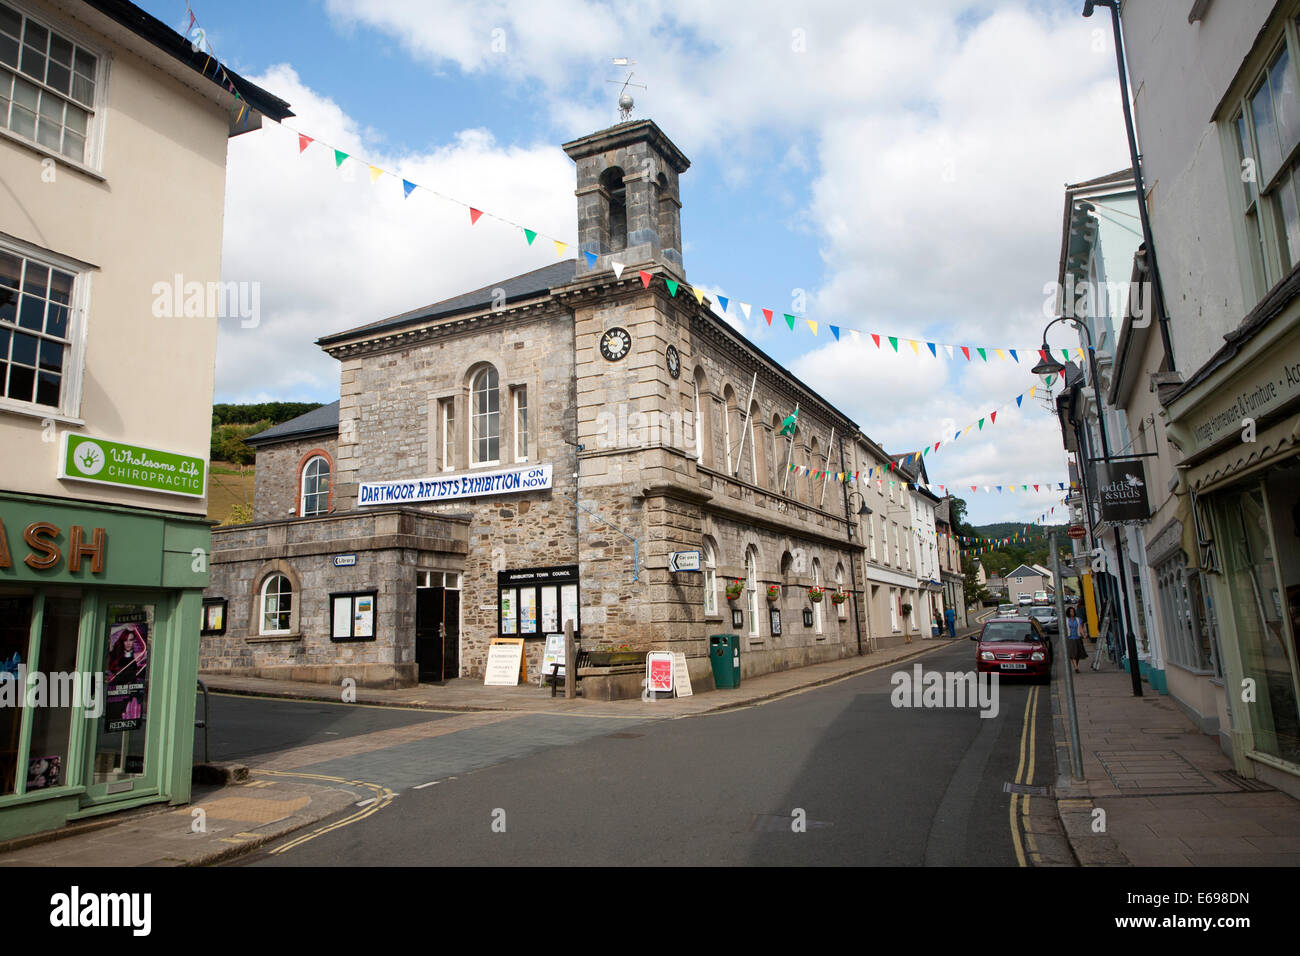 Shops and town hall in North Street, Ashburton, Devon, England, - Stock Image